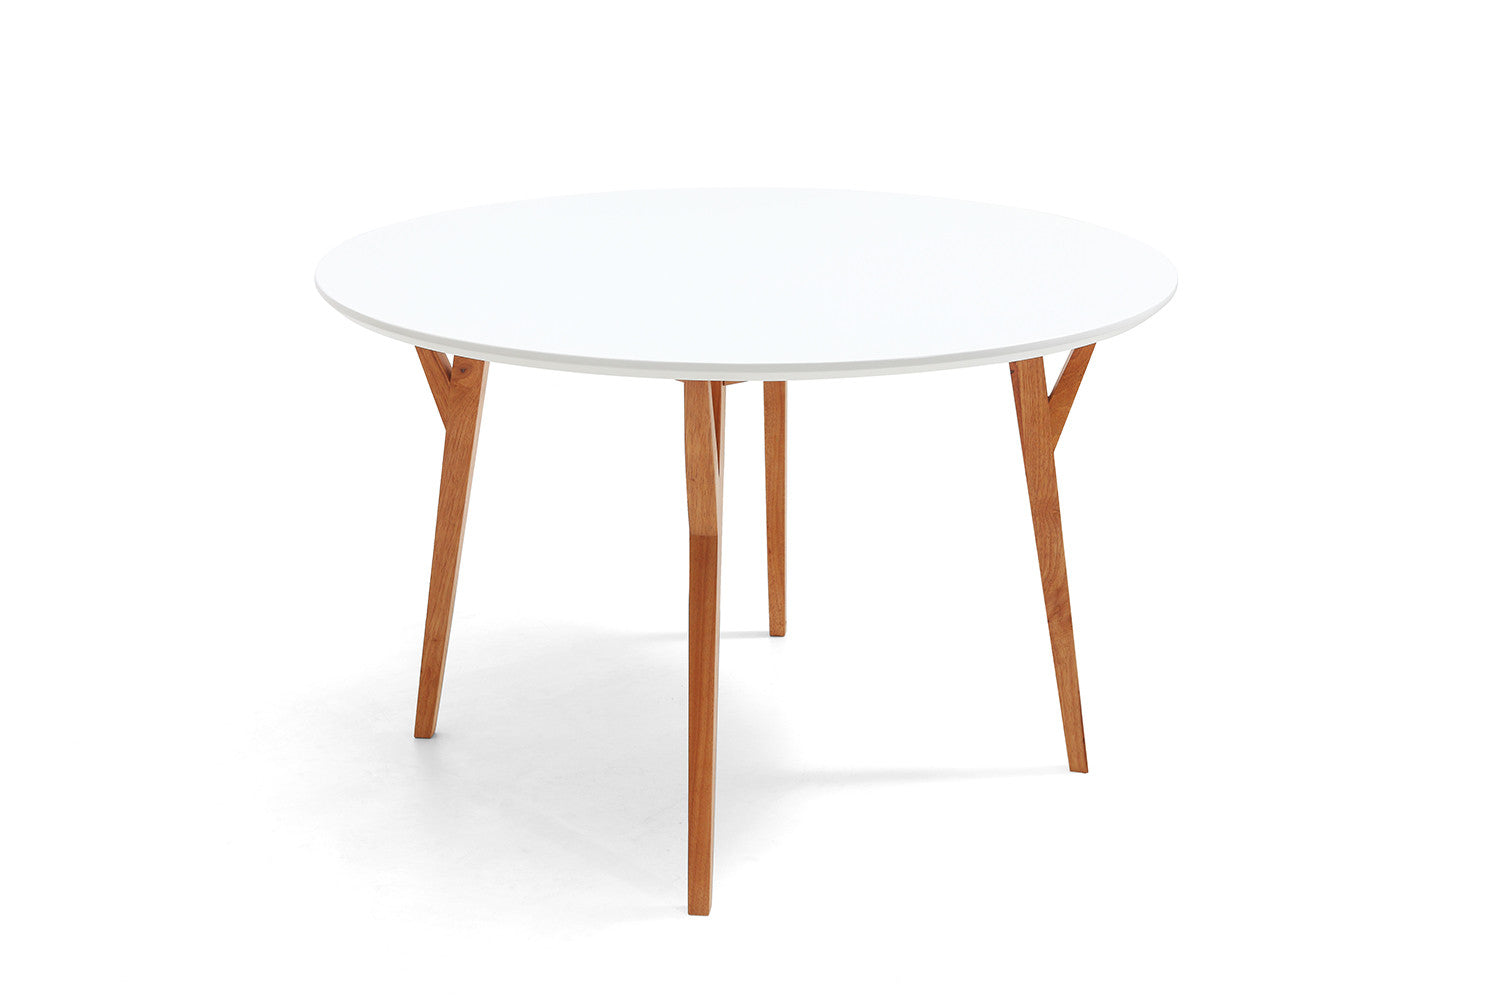 Table de salle manger ronde design scandinave moesa for Table a manger ronde a rallonge